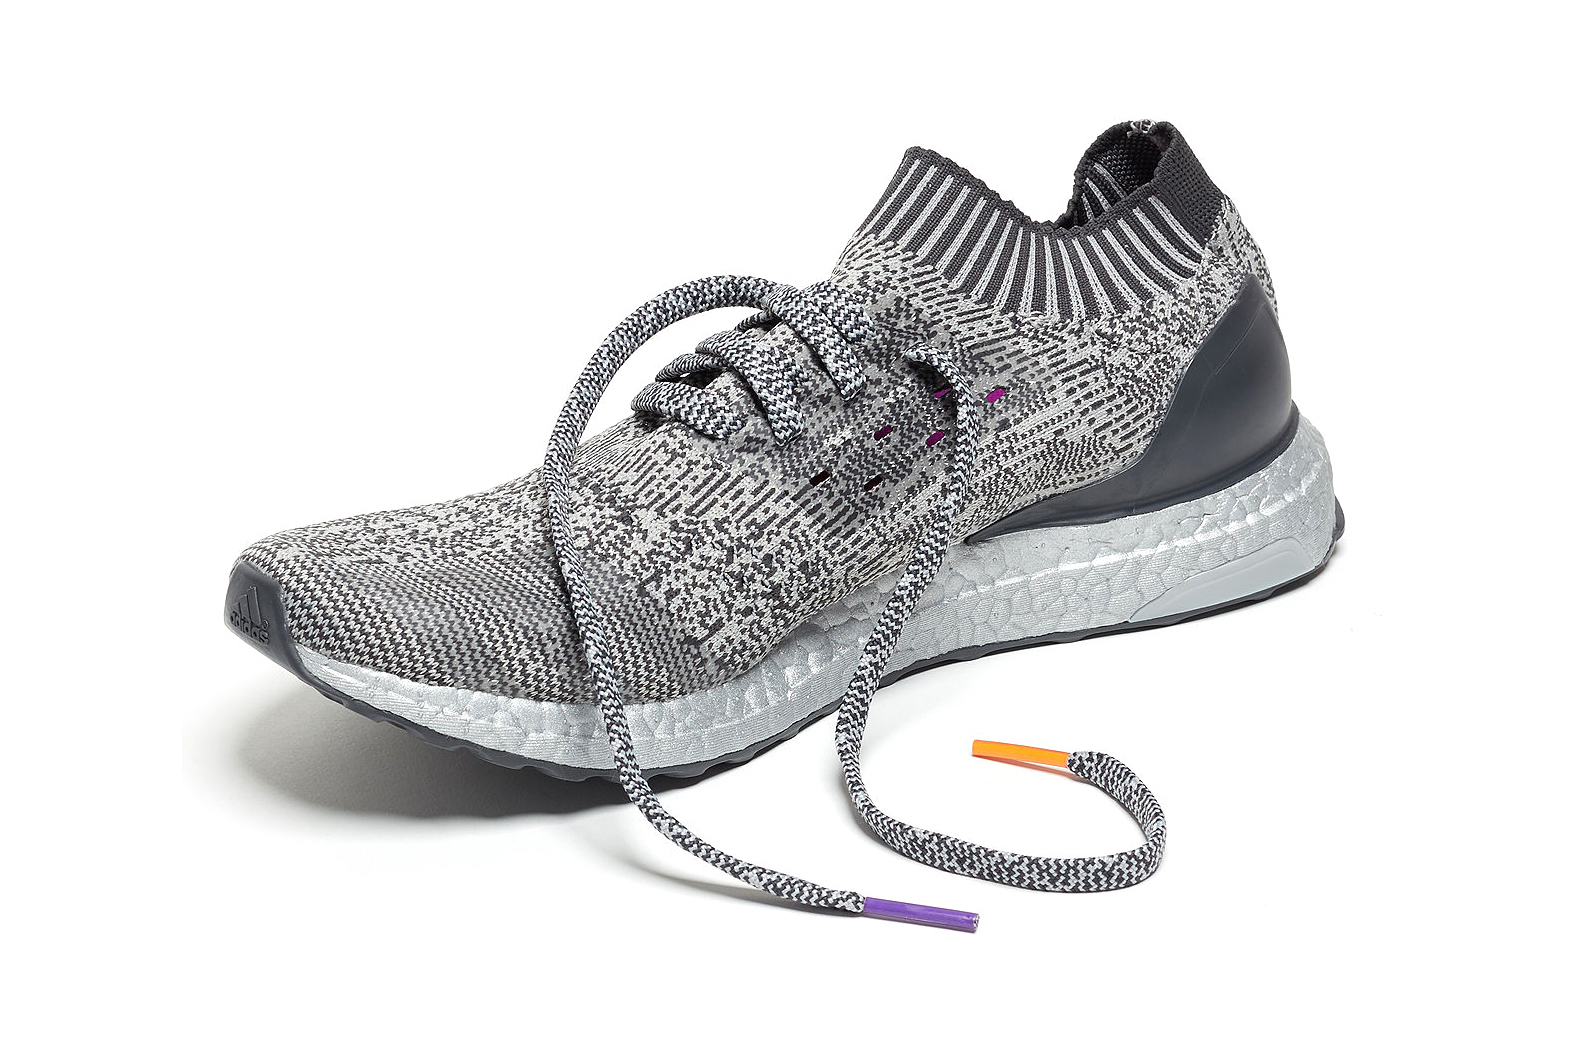 adidas UltraBOOST Uncaged Silver Release Date - 3721440